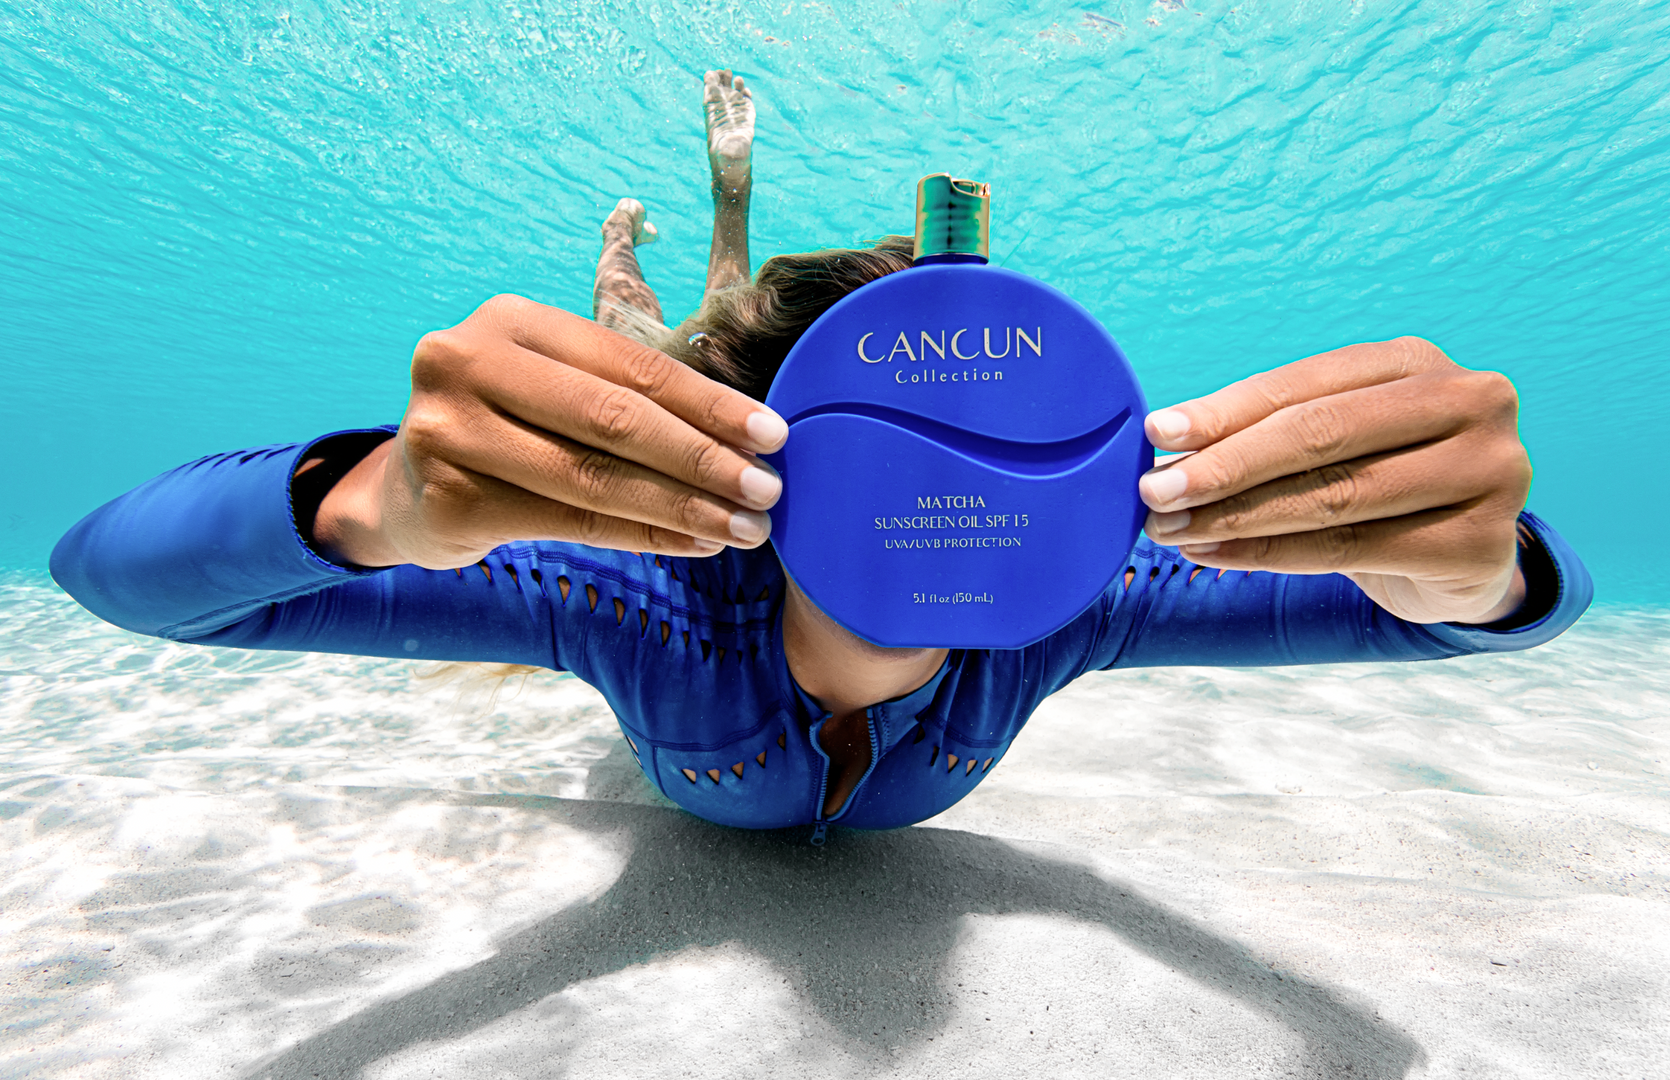 Cancun Collection